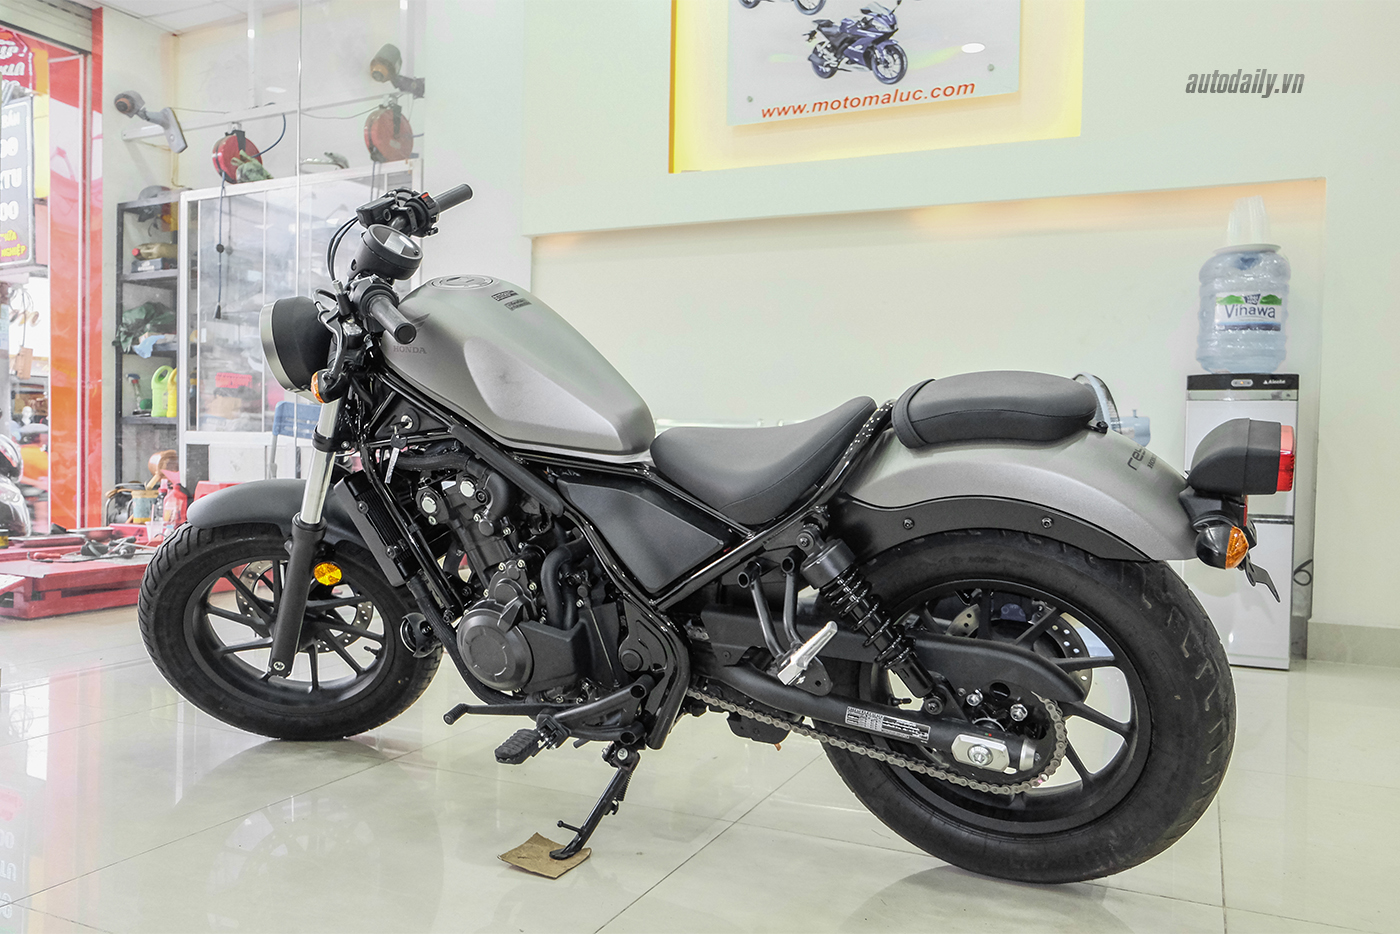 honda-rebel-500-abs-2017-9.jpg